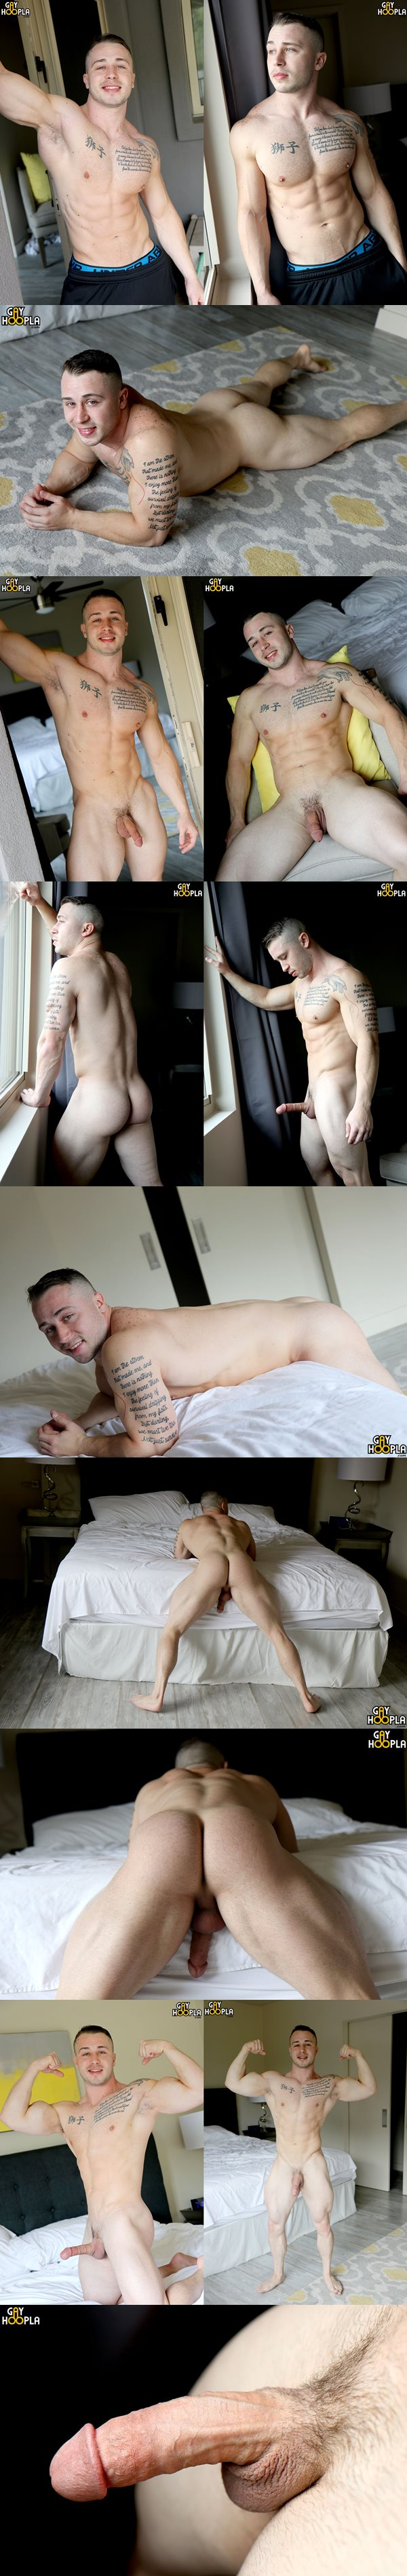 Hot muscle stud Dom Knight works out and jerks off at Gayhoopla